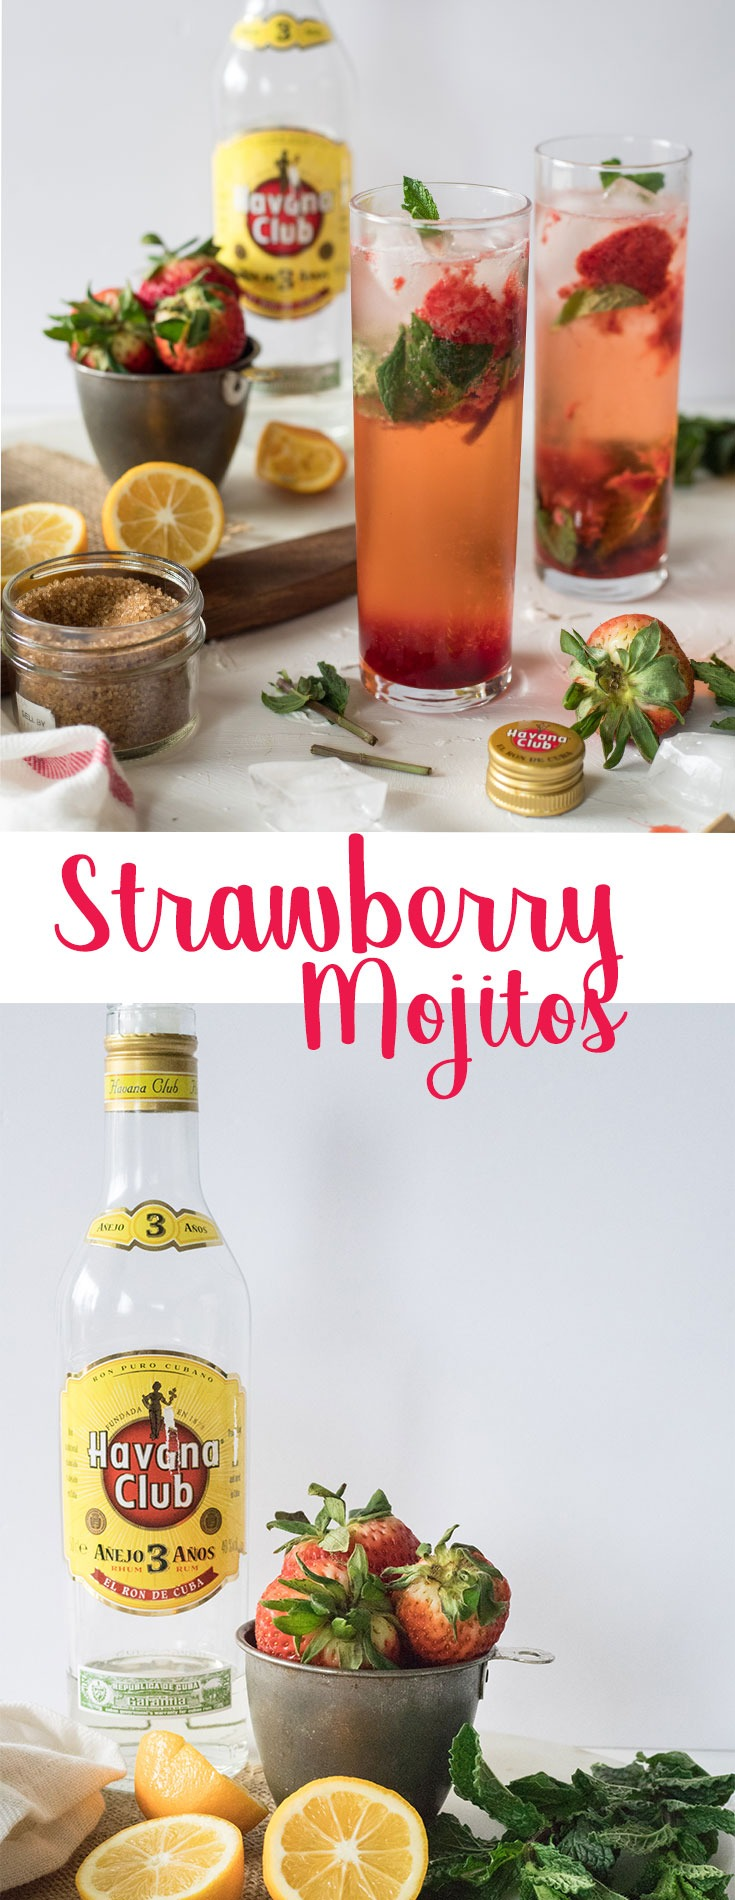 Looking for a signature cocktail this summer? this strawberry mojito recipe is a total crowd pleaser. Great for parties and gatherings, these cocktails are light, fresh, simple and full of flavour. They taste just like strawberry lemonade, with an additional little kick! #mojito #strawberrymojito #summercocktail #cocktail